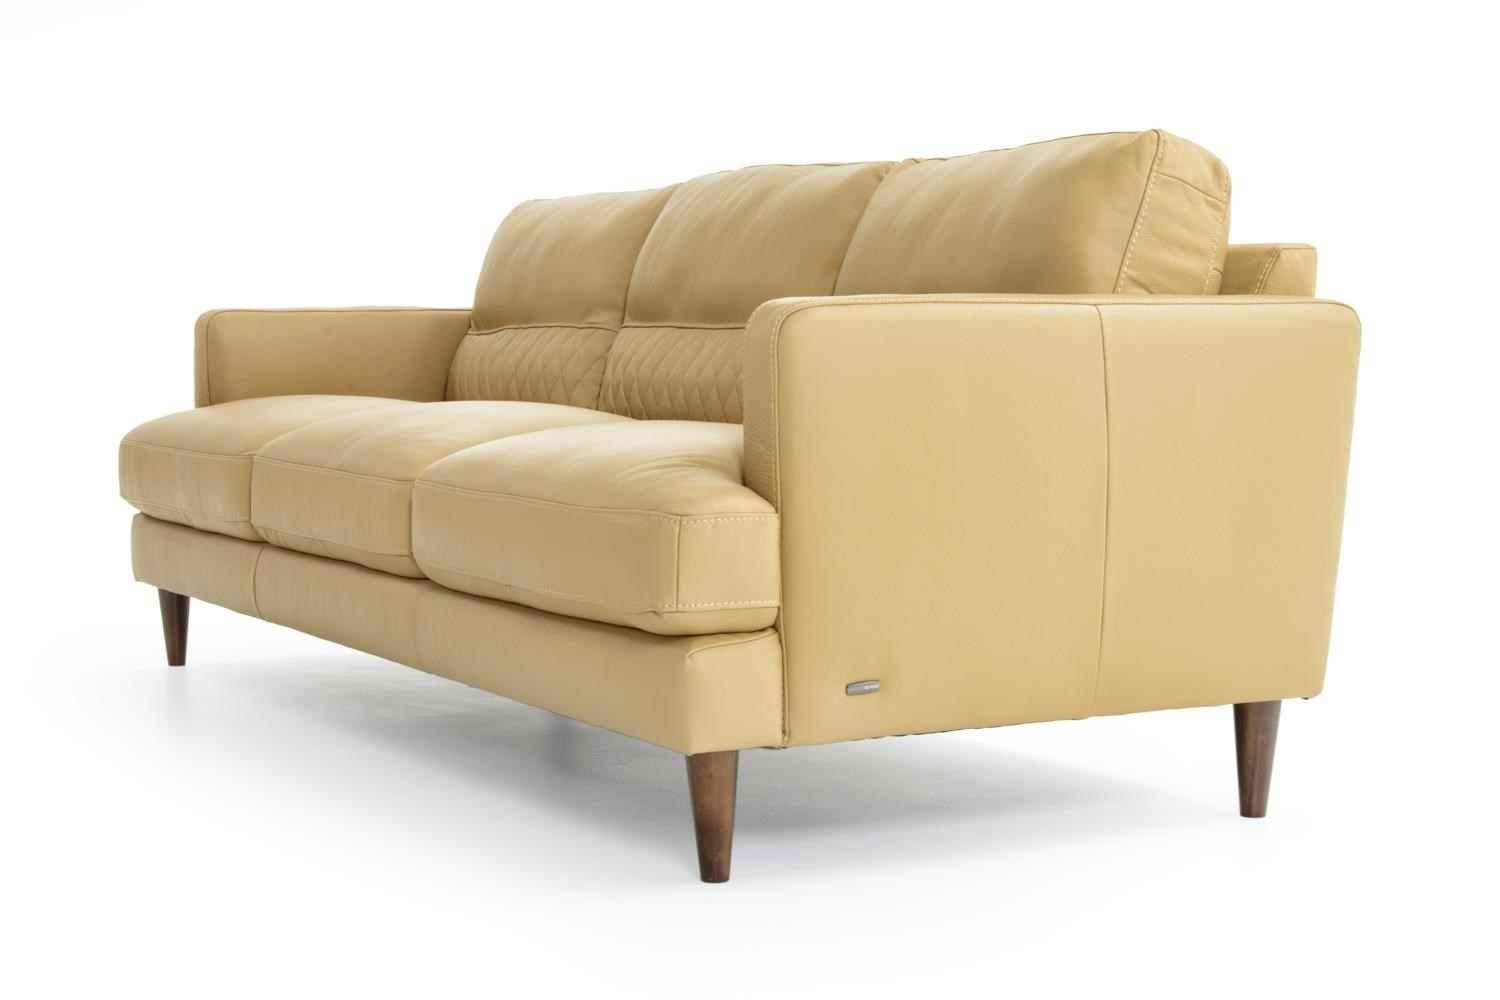 modern low back sofas loveseat sofa beds vancouver lower 38 brilliant floor level designs to boost